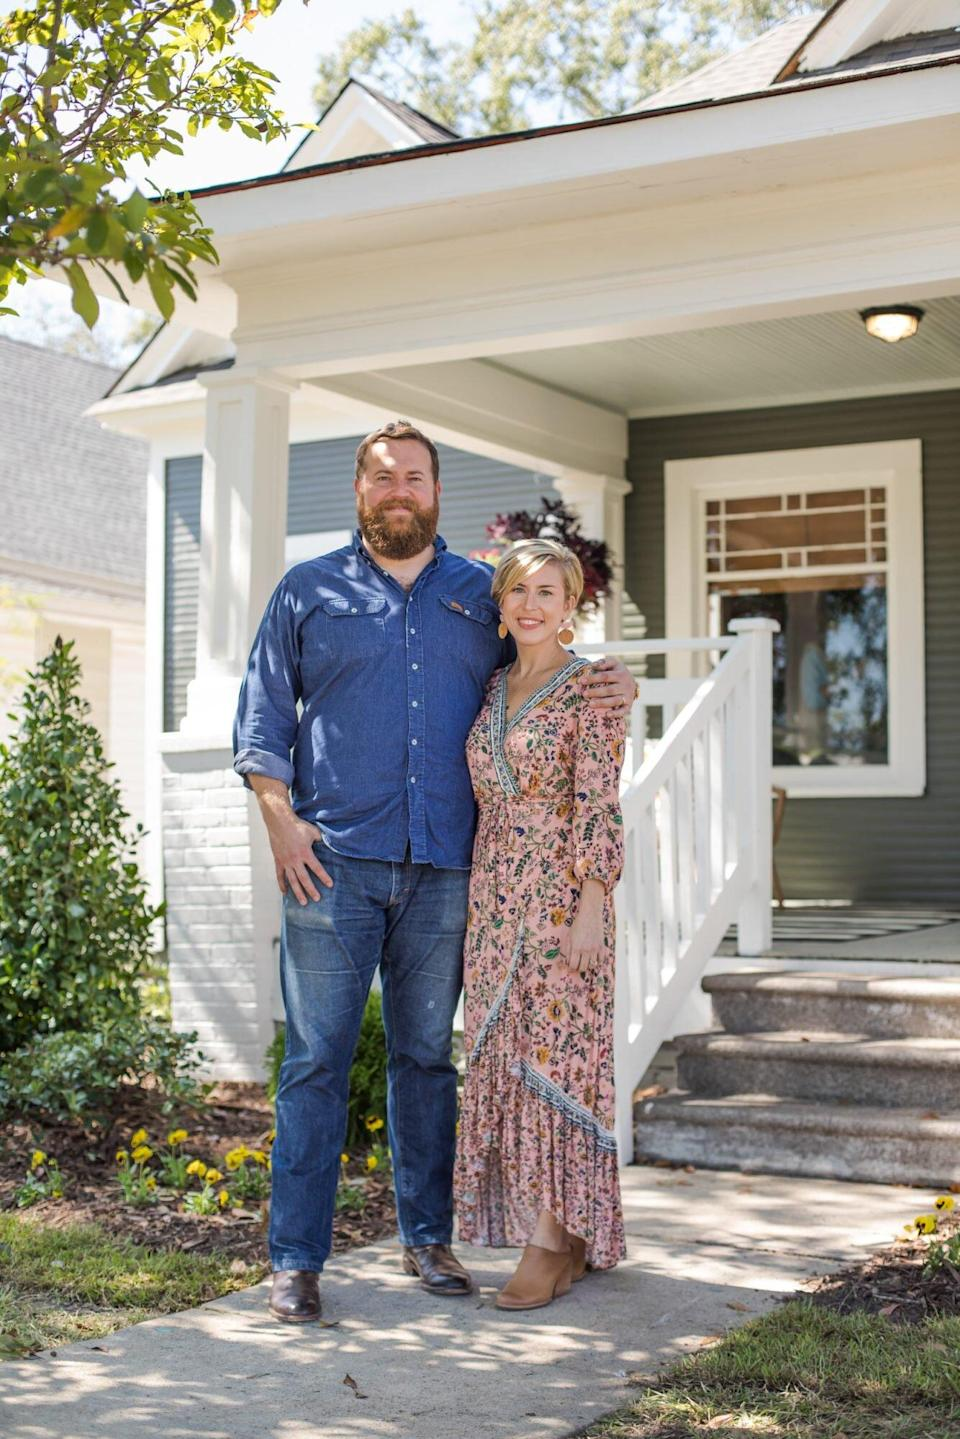 Ben and Erin Napier in Front of House